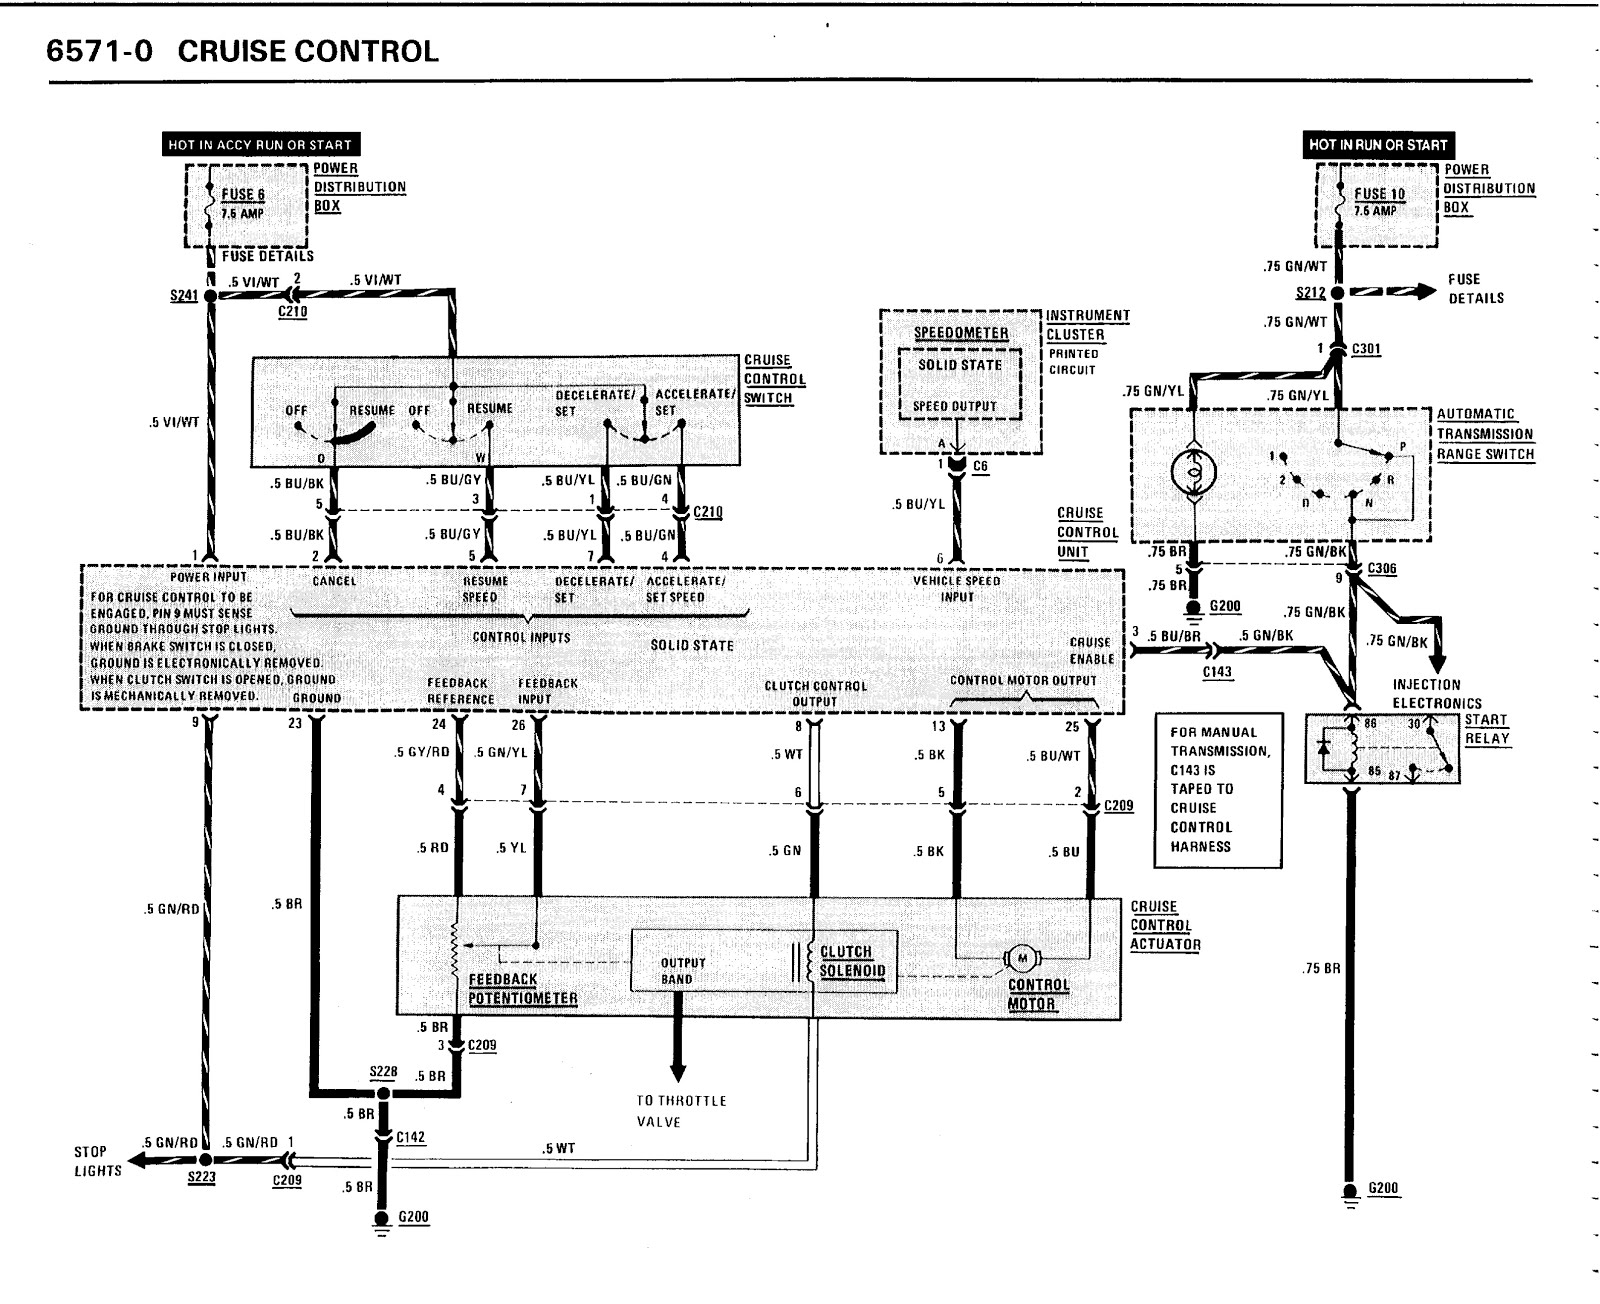 hight resolution of bmw cruise control diagram diagram data schema exp bmw e30 cruise control wiring diagram bmw cruise control diagram